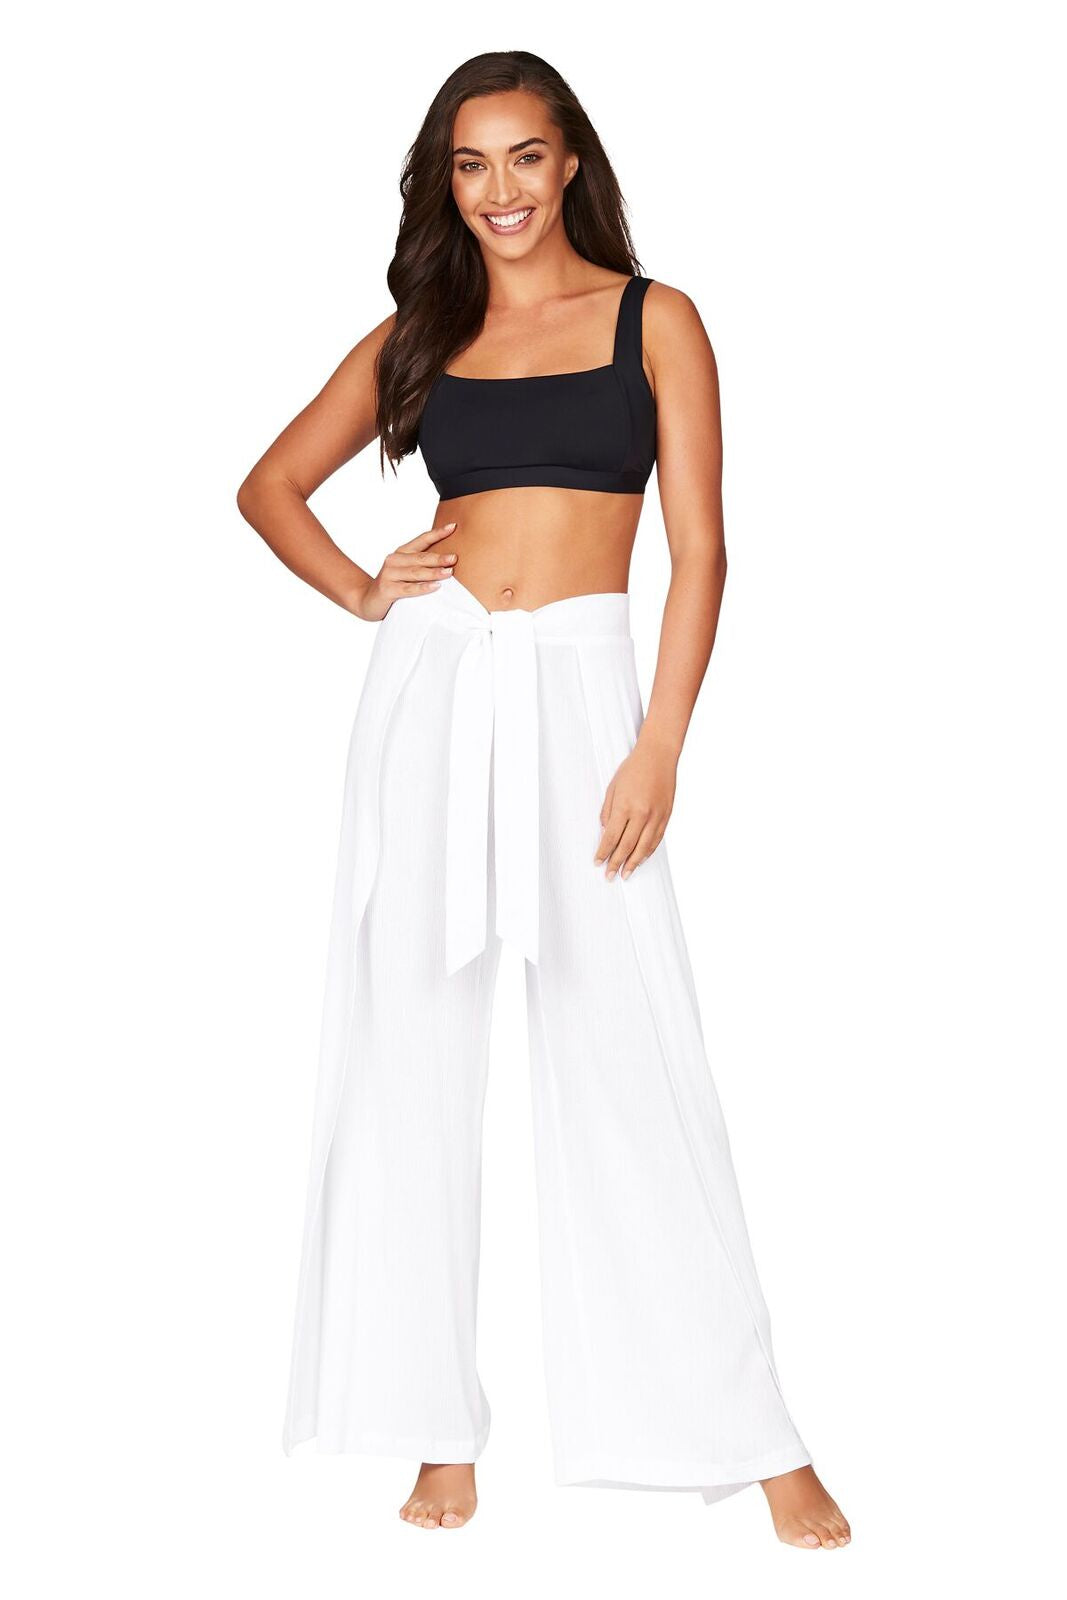 SEA LEVEL - WRAP PANT/WHITE